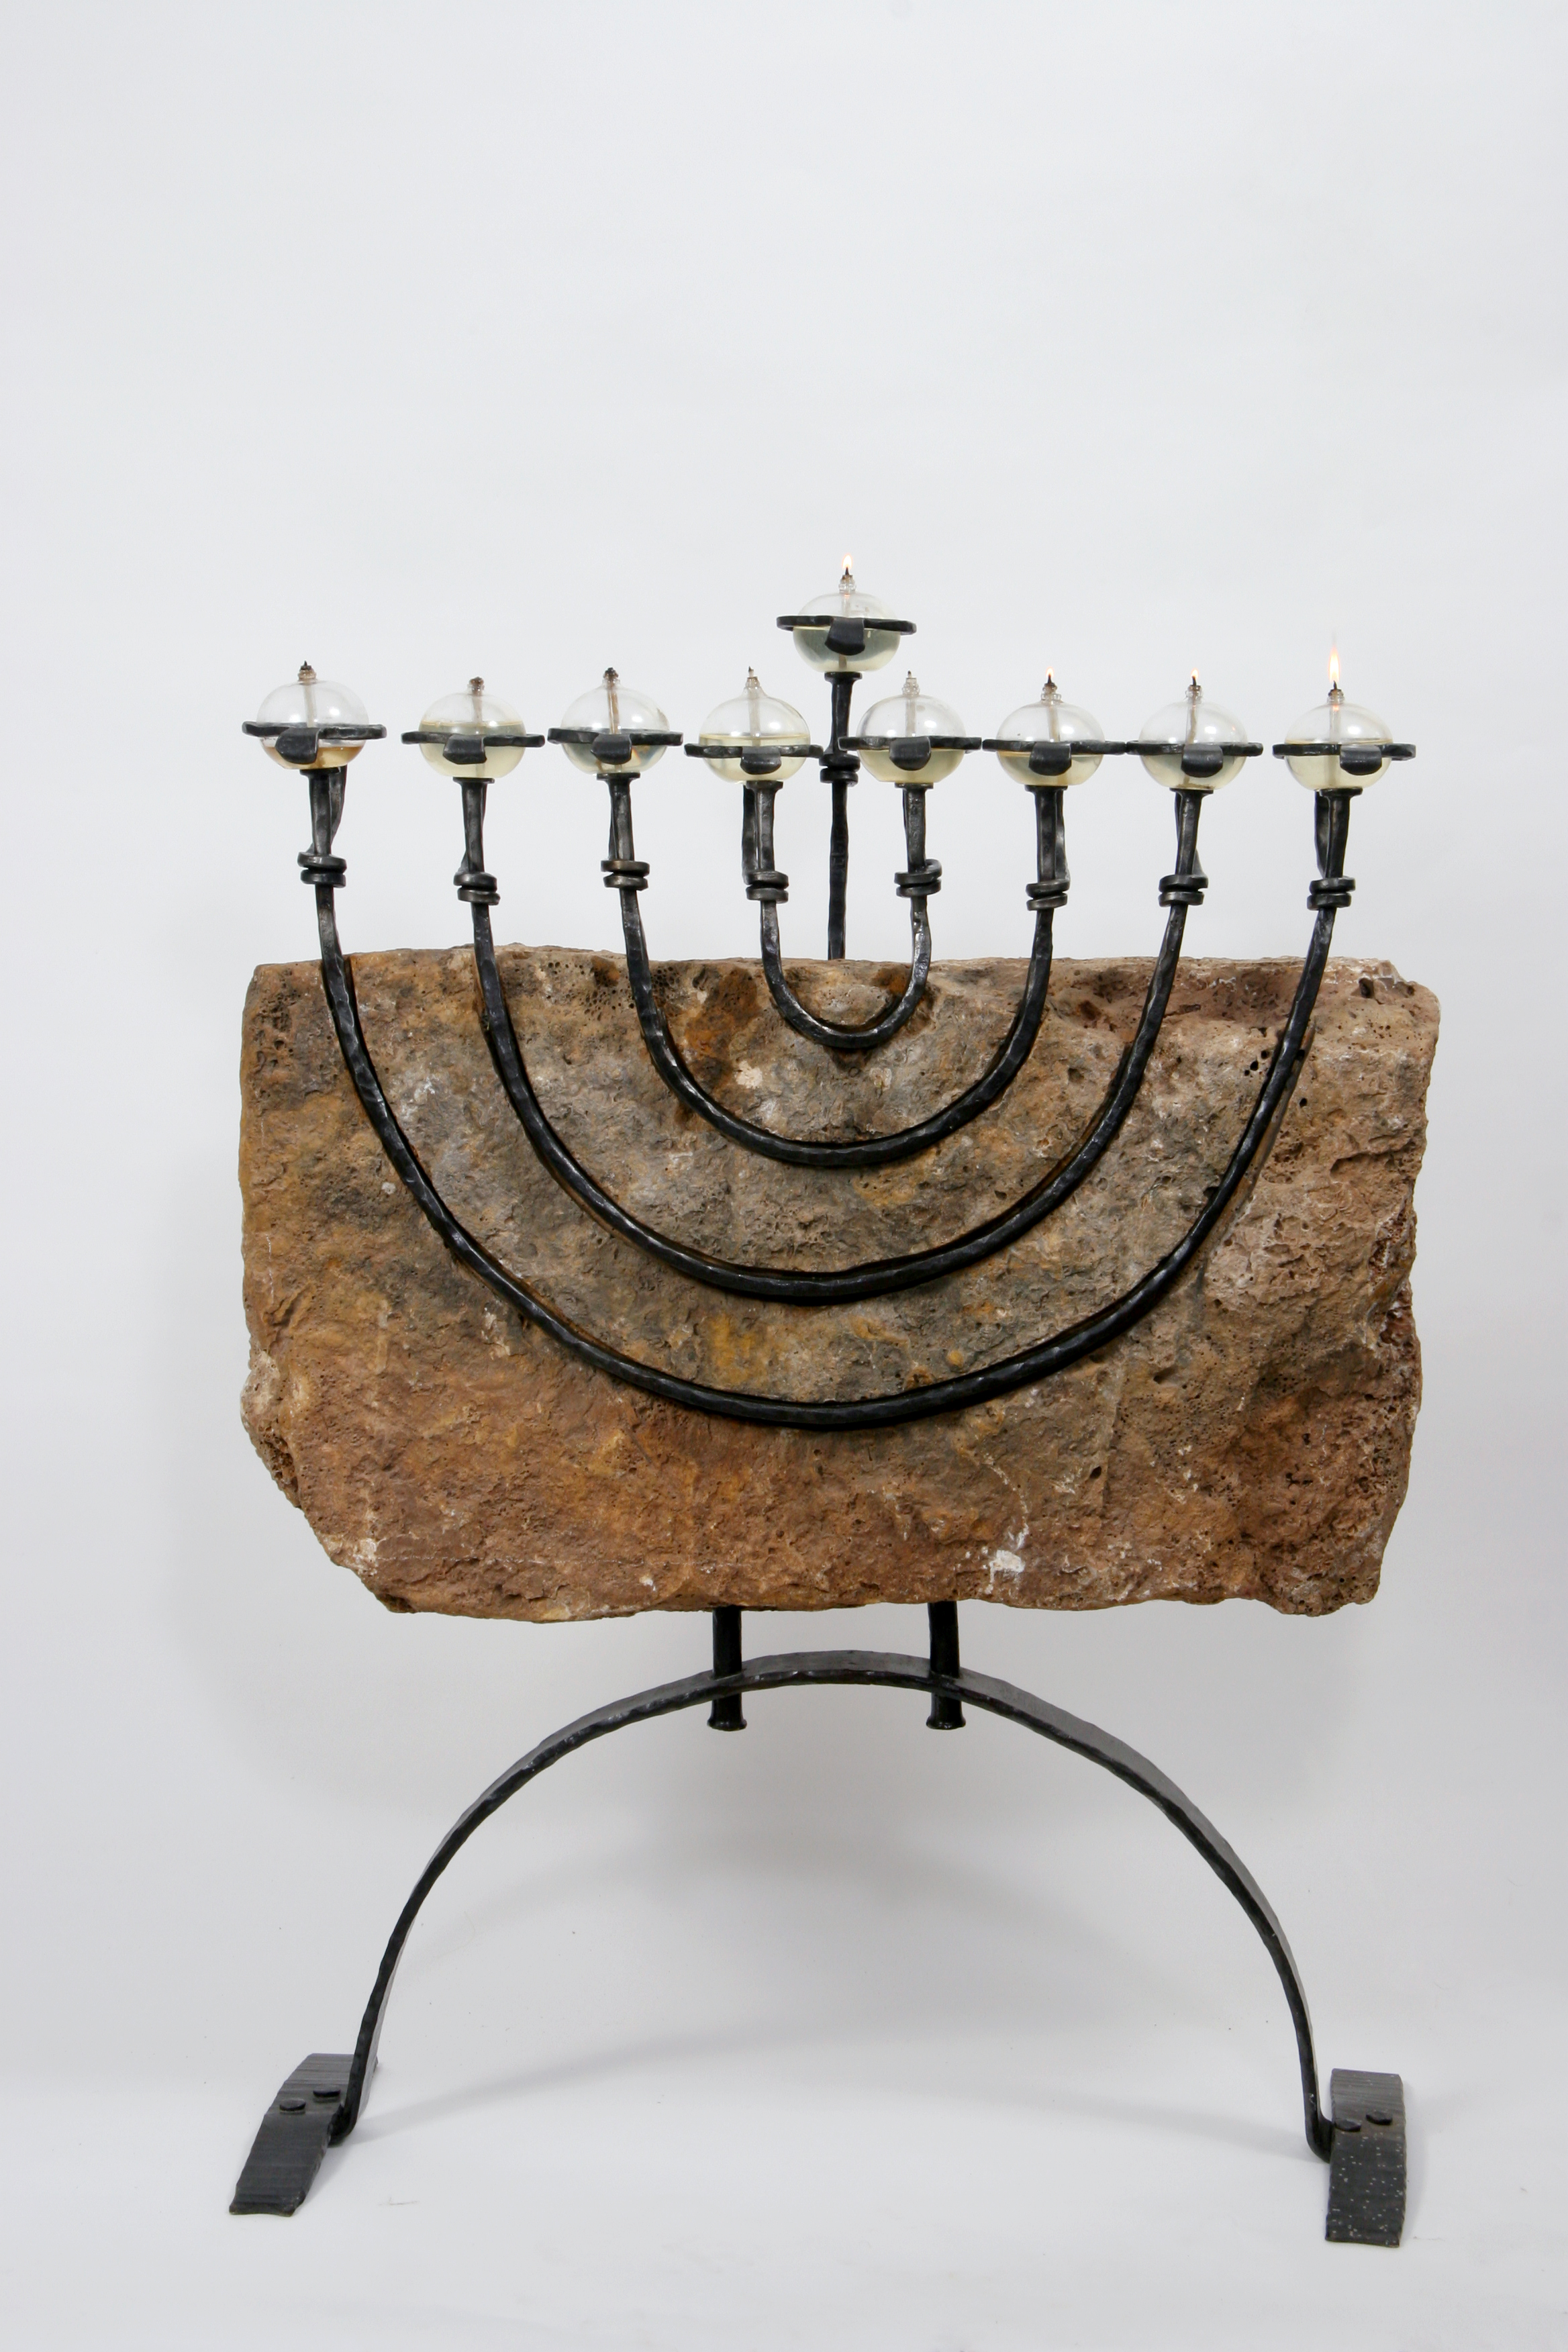 Matityahu - Hanukkah Menorah of Limestone, Iron & Glass